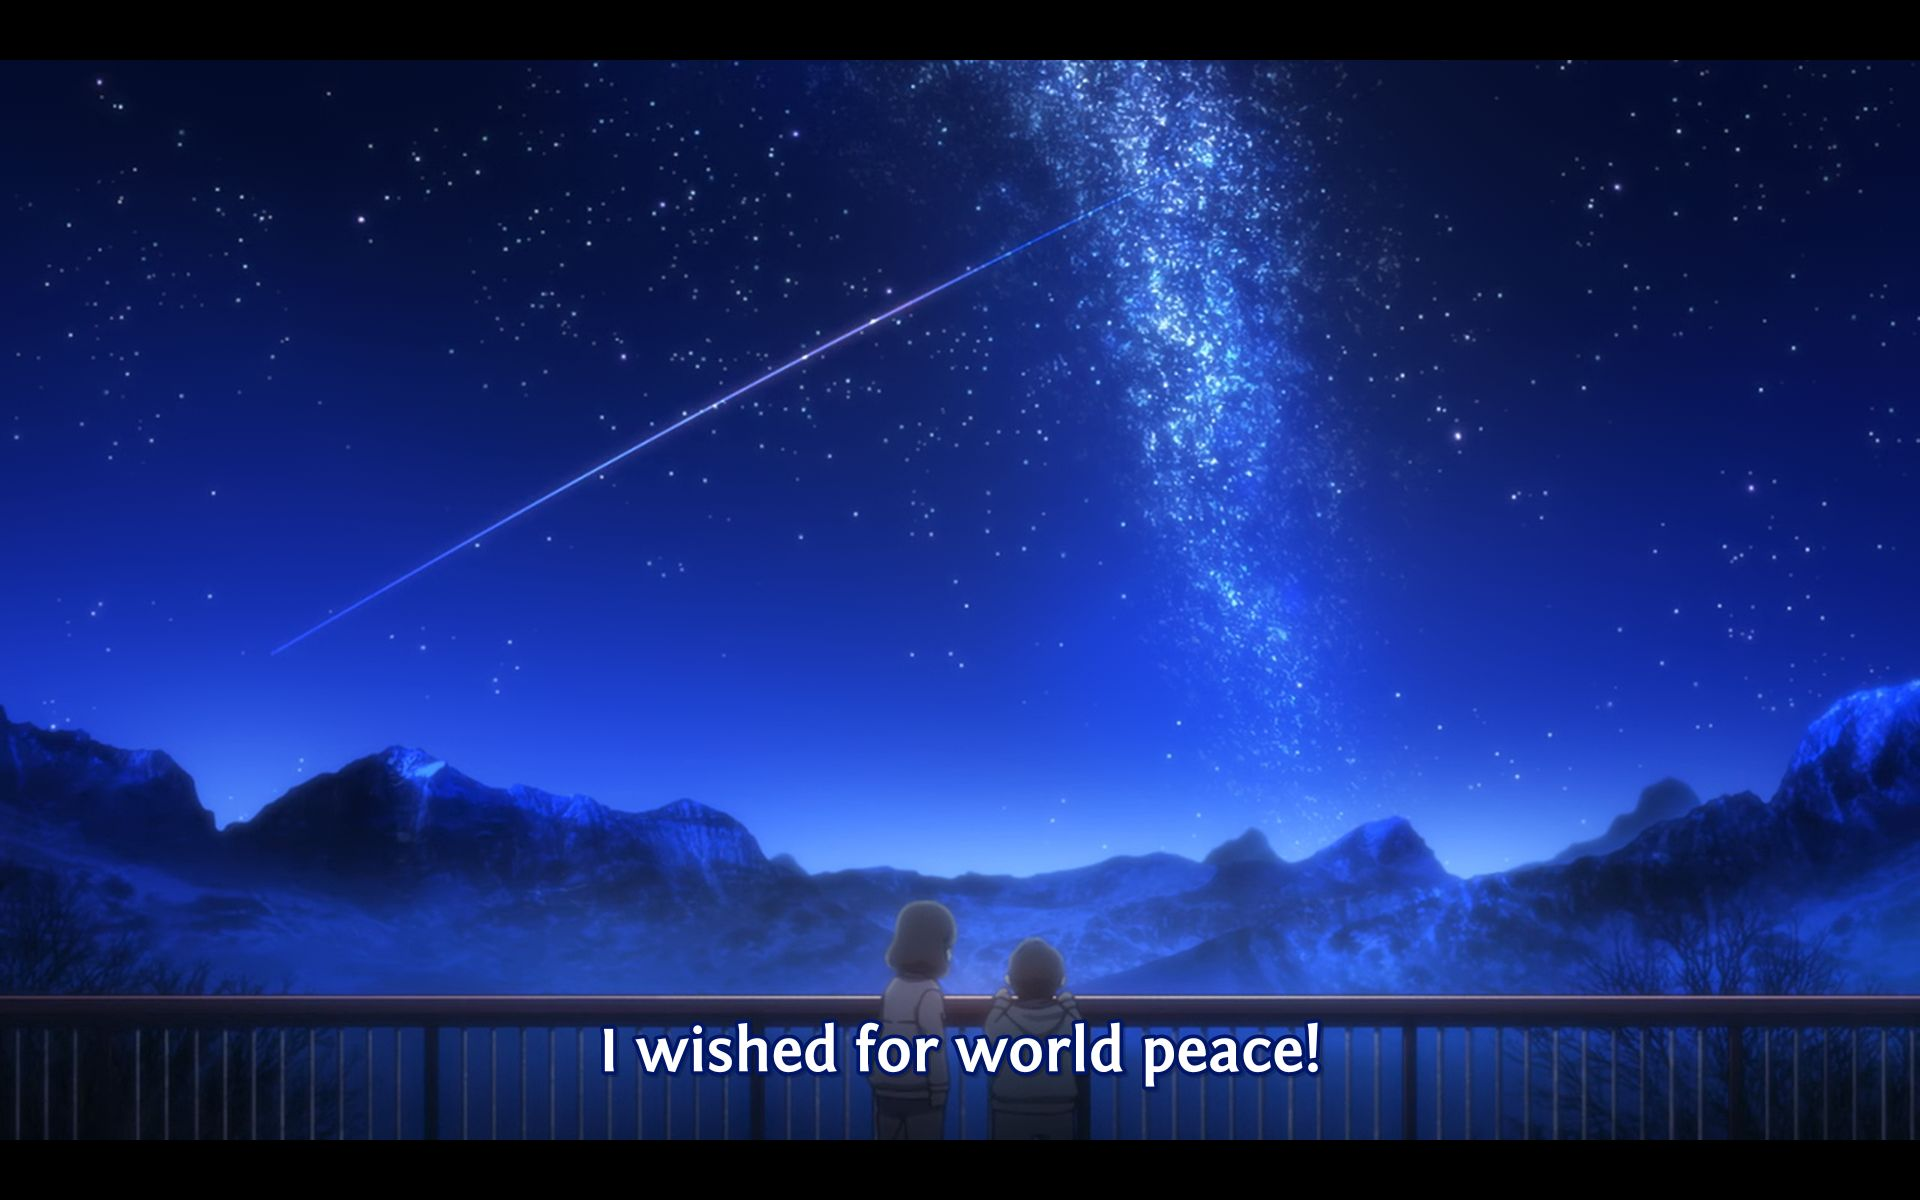 You have to watch this anime to find out whether their wish will come true or not.